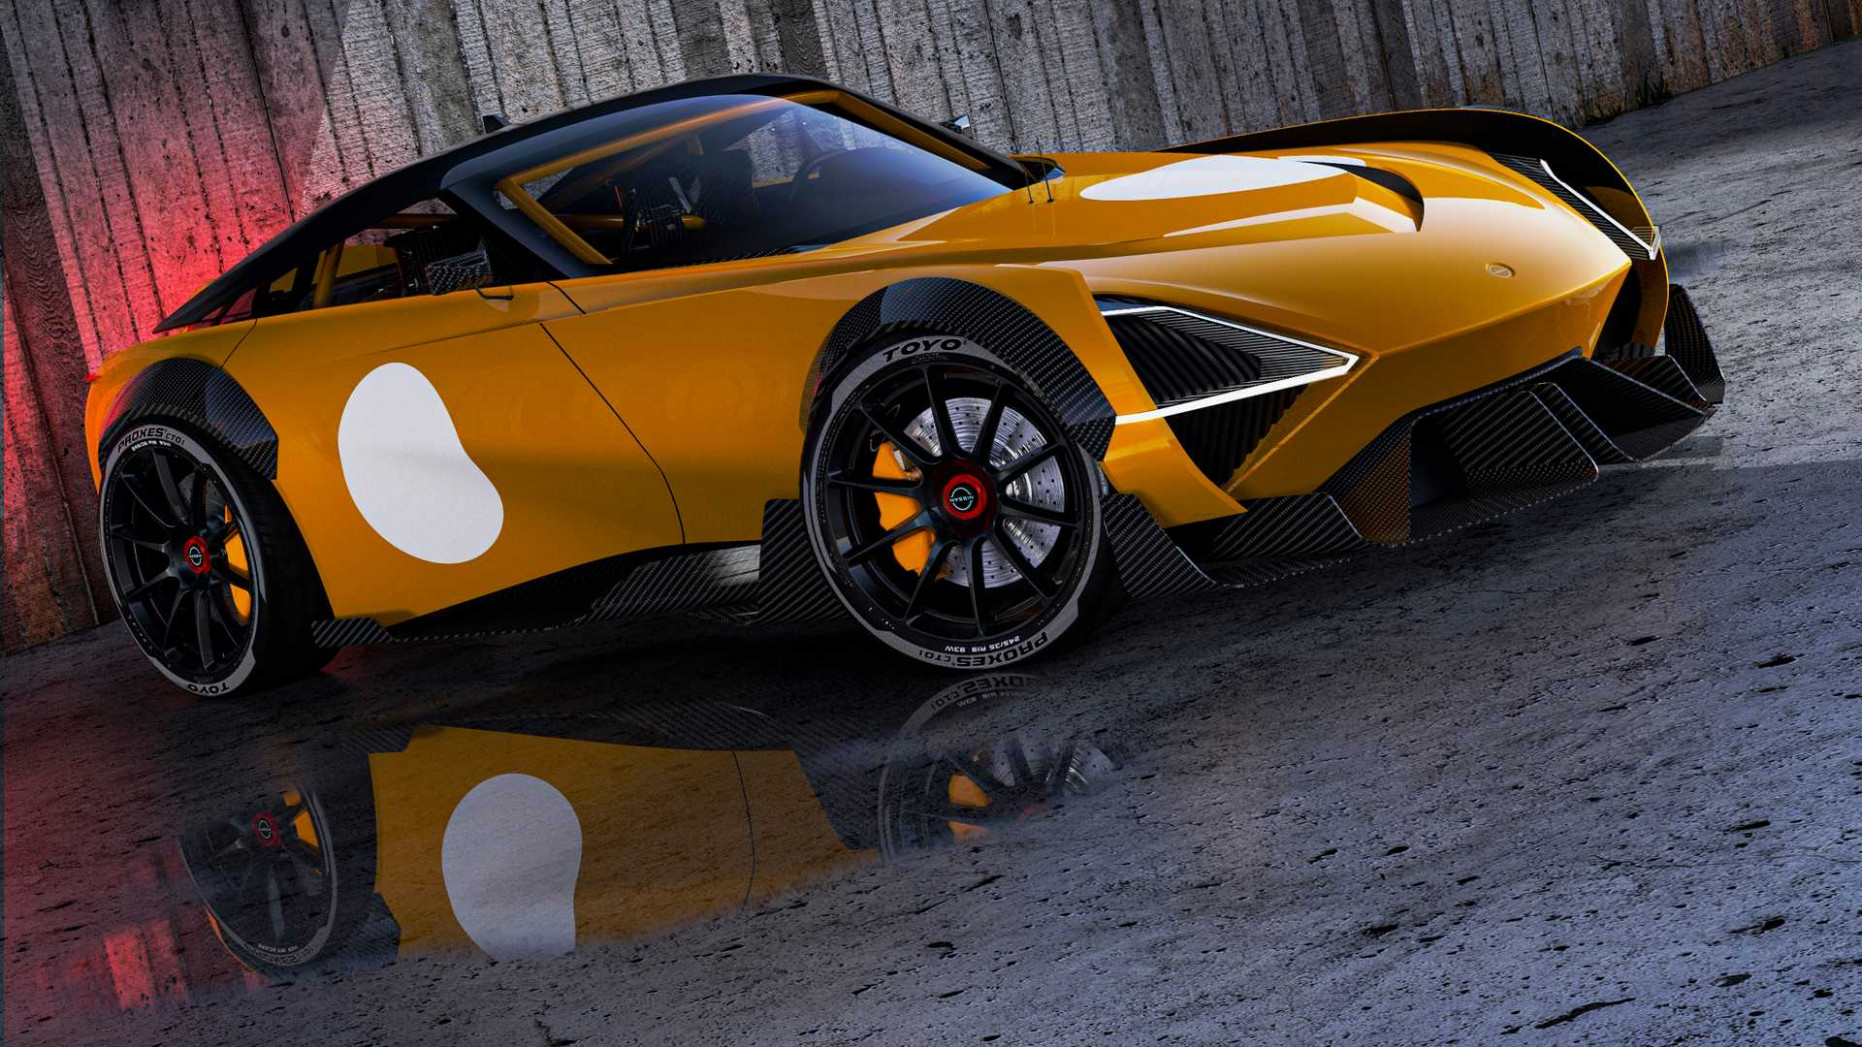 Redesign and Concept Nissan Concept 2022 Price